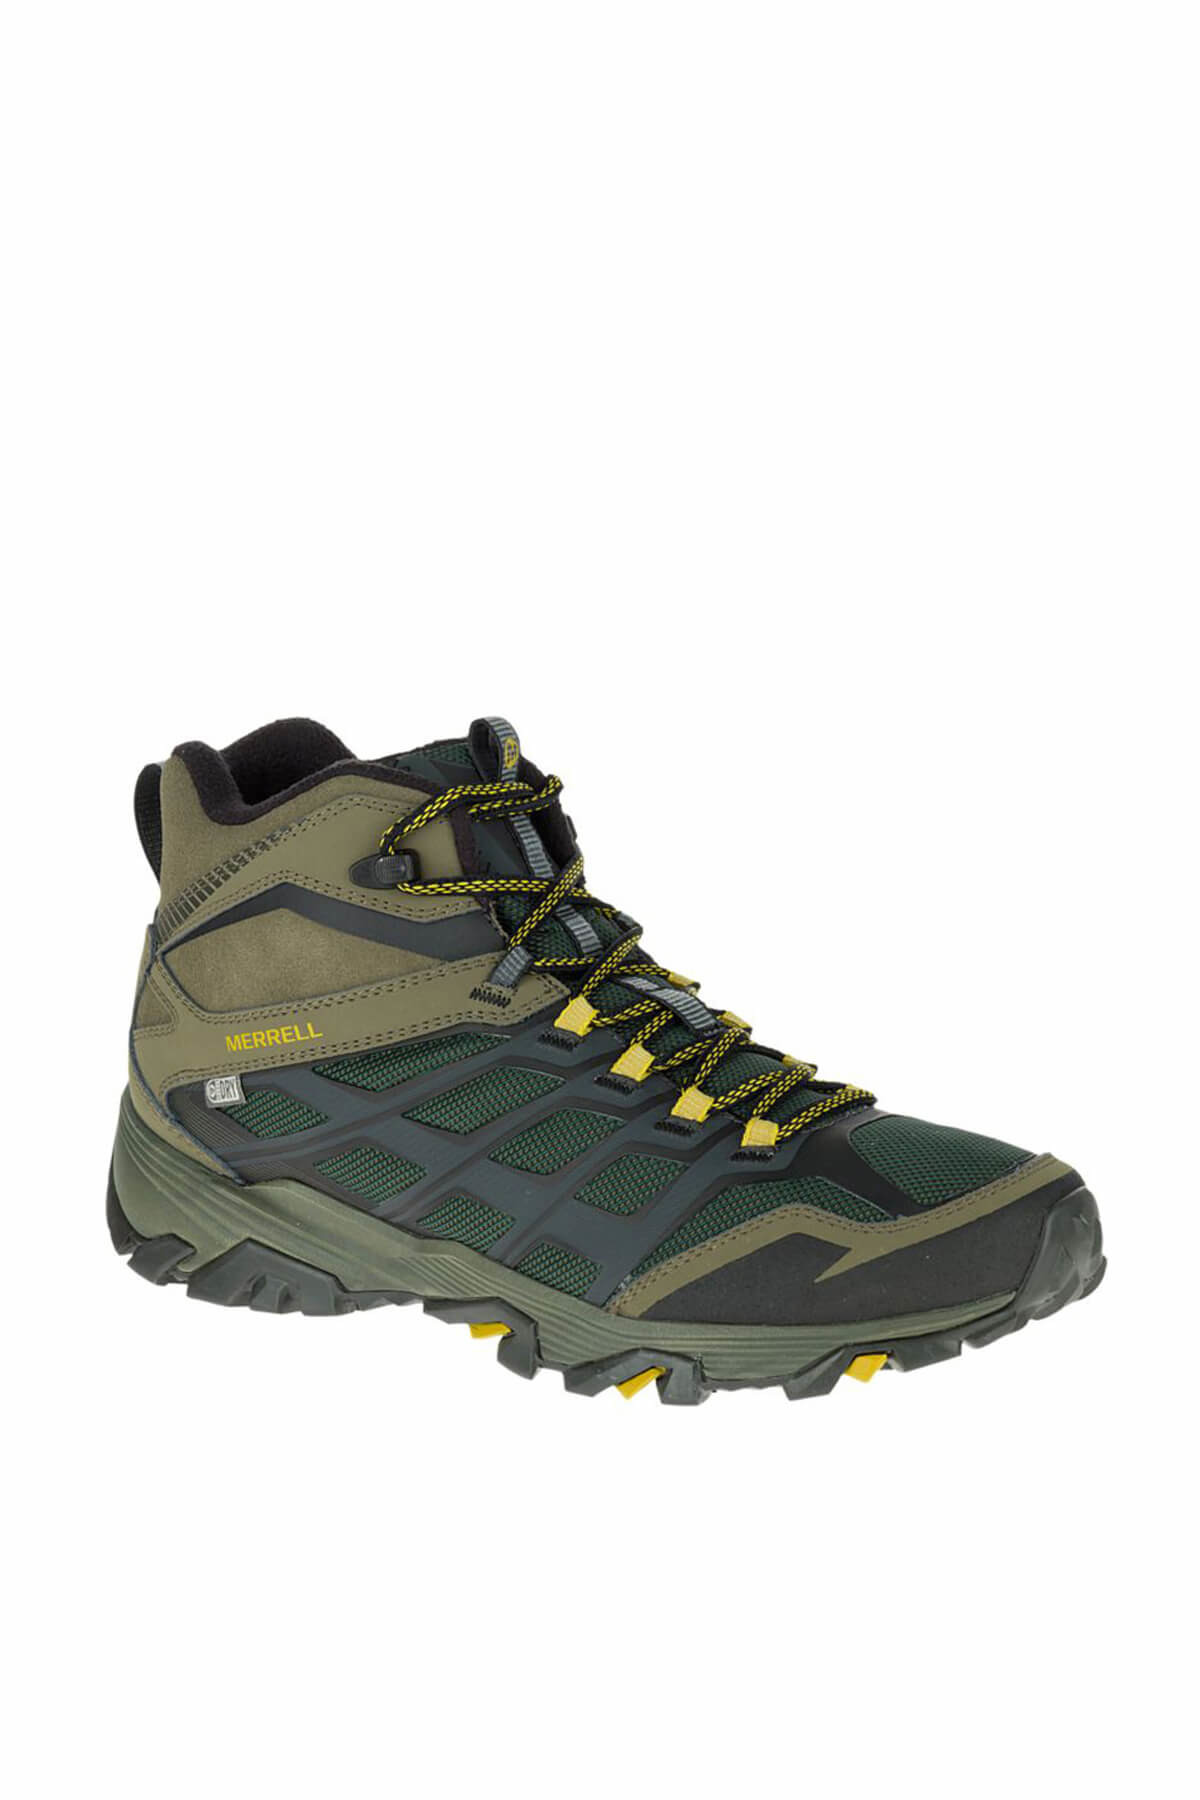 Merrell Moab Fst Ice+ Thermo Bot – 899.99 TL